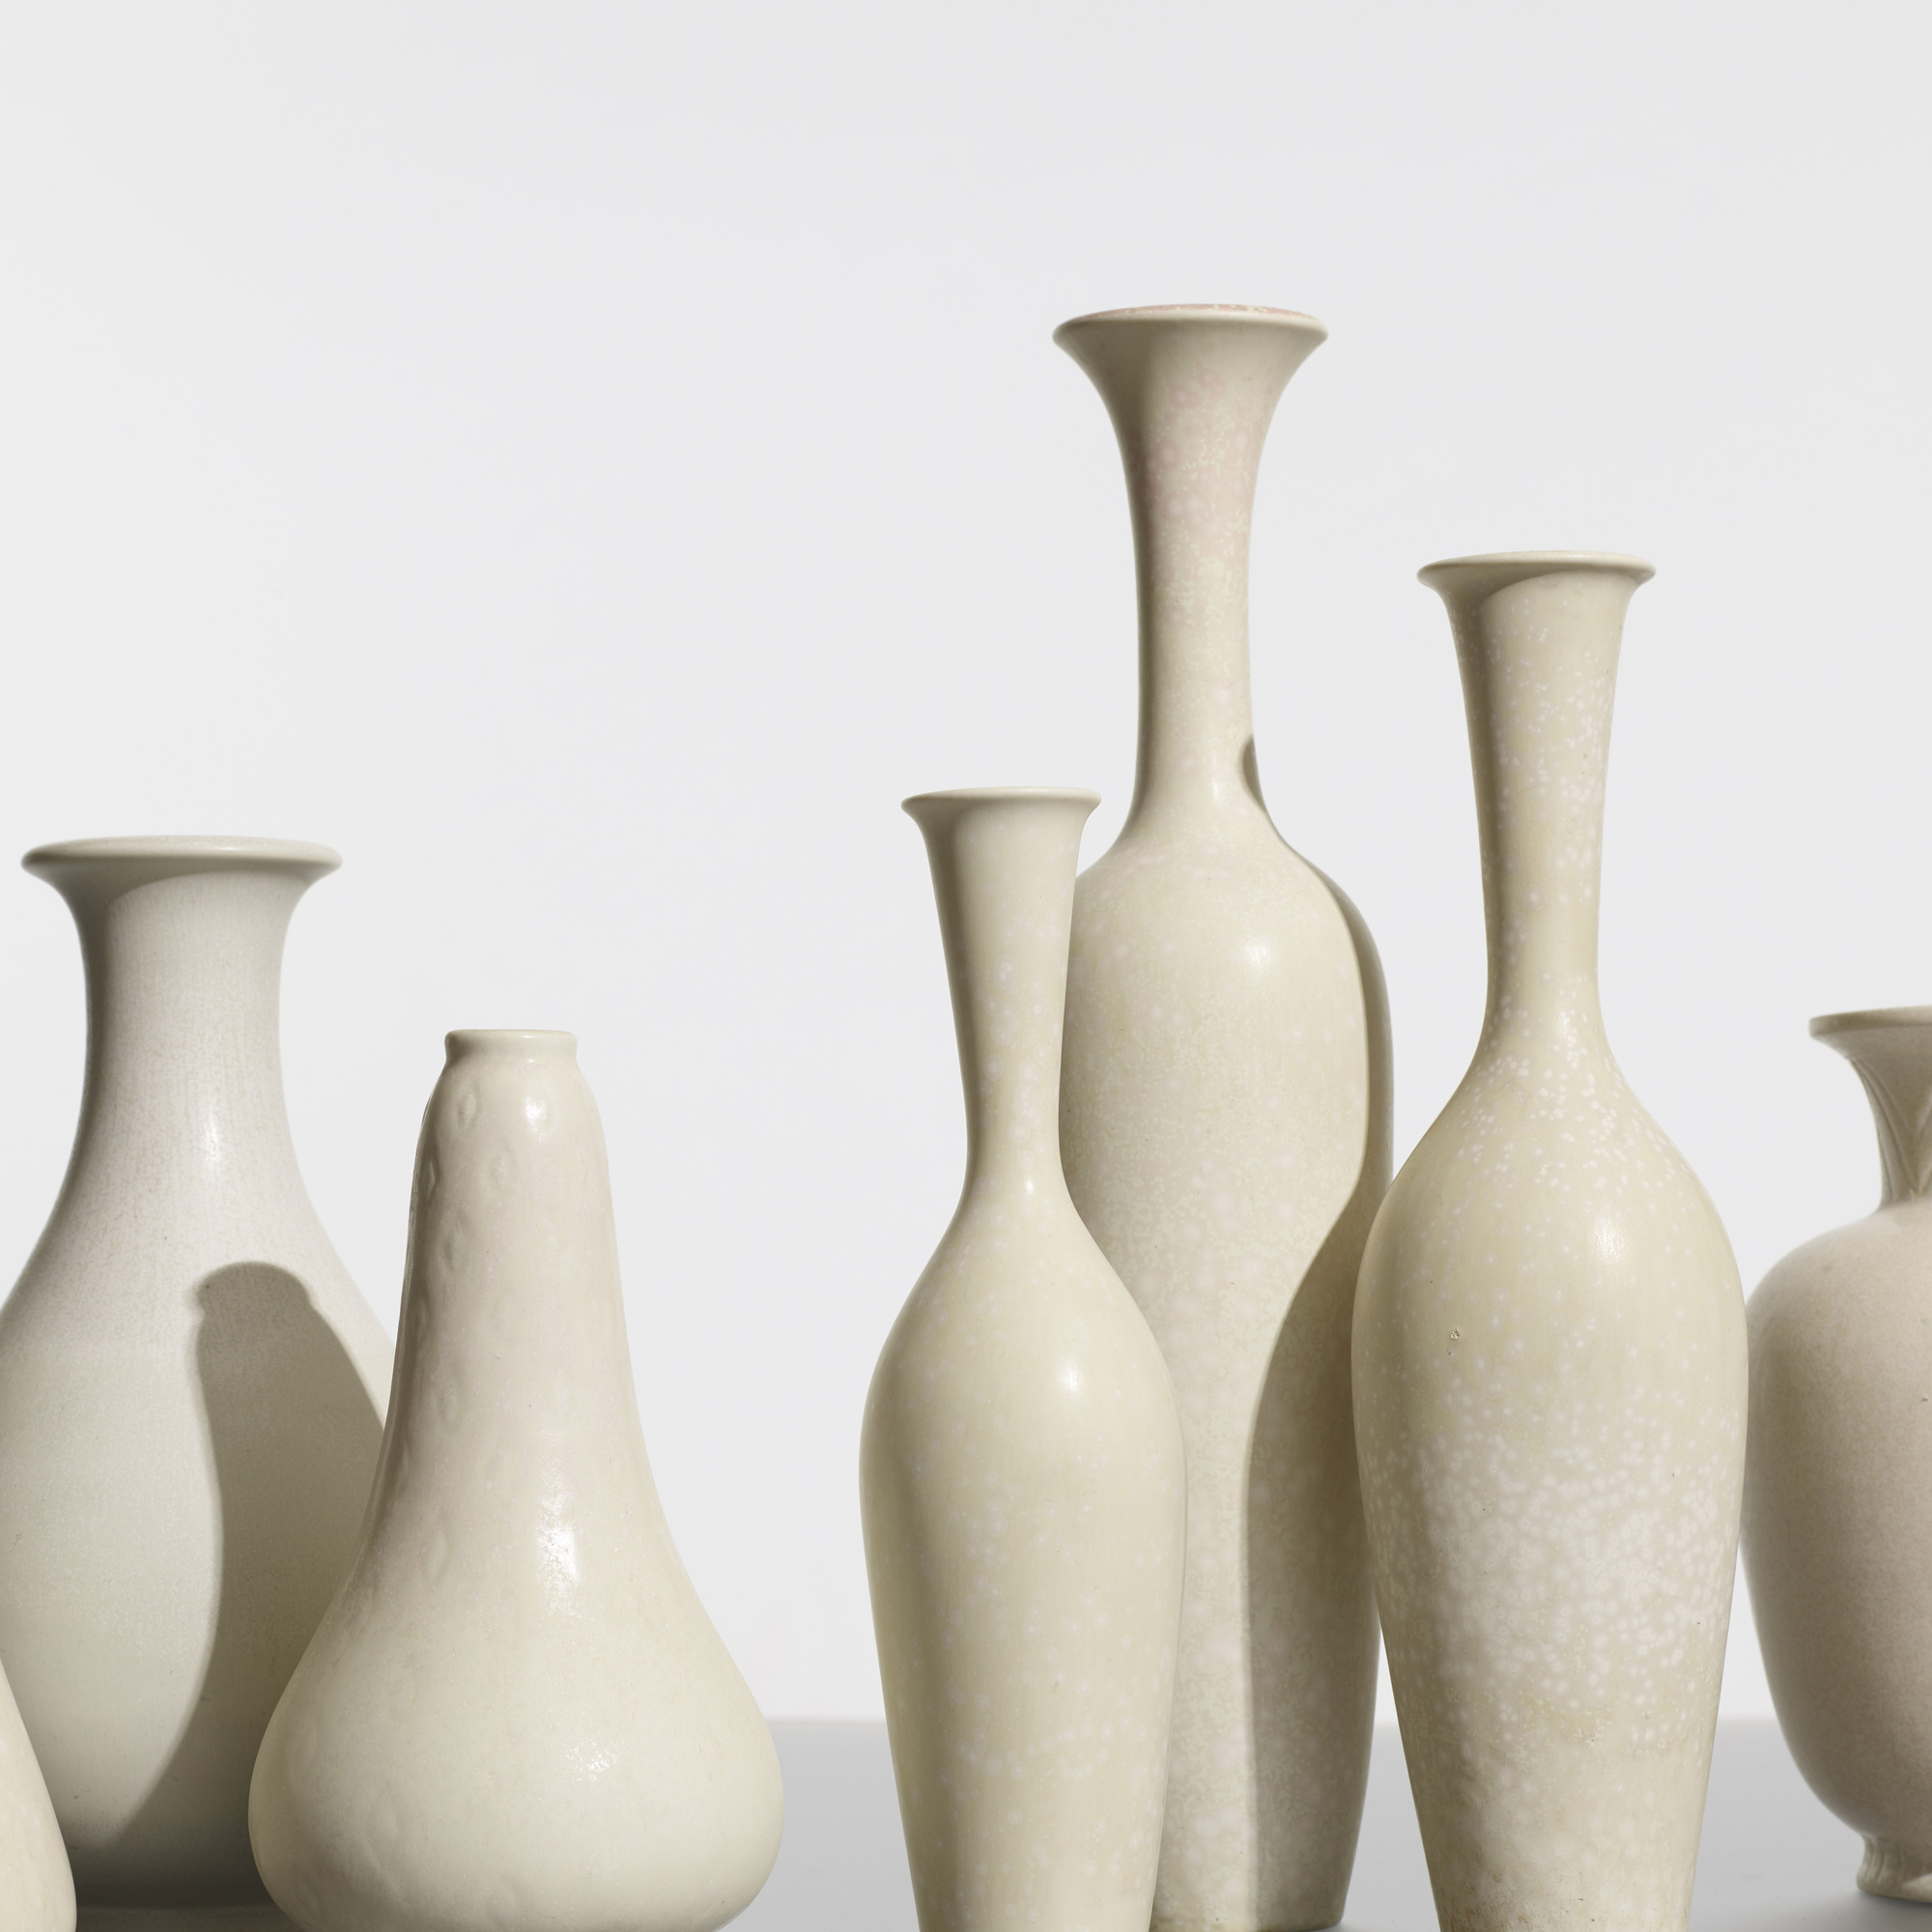 167: Gunnar Nylund / collection of ten vessels (3 of 4)